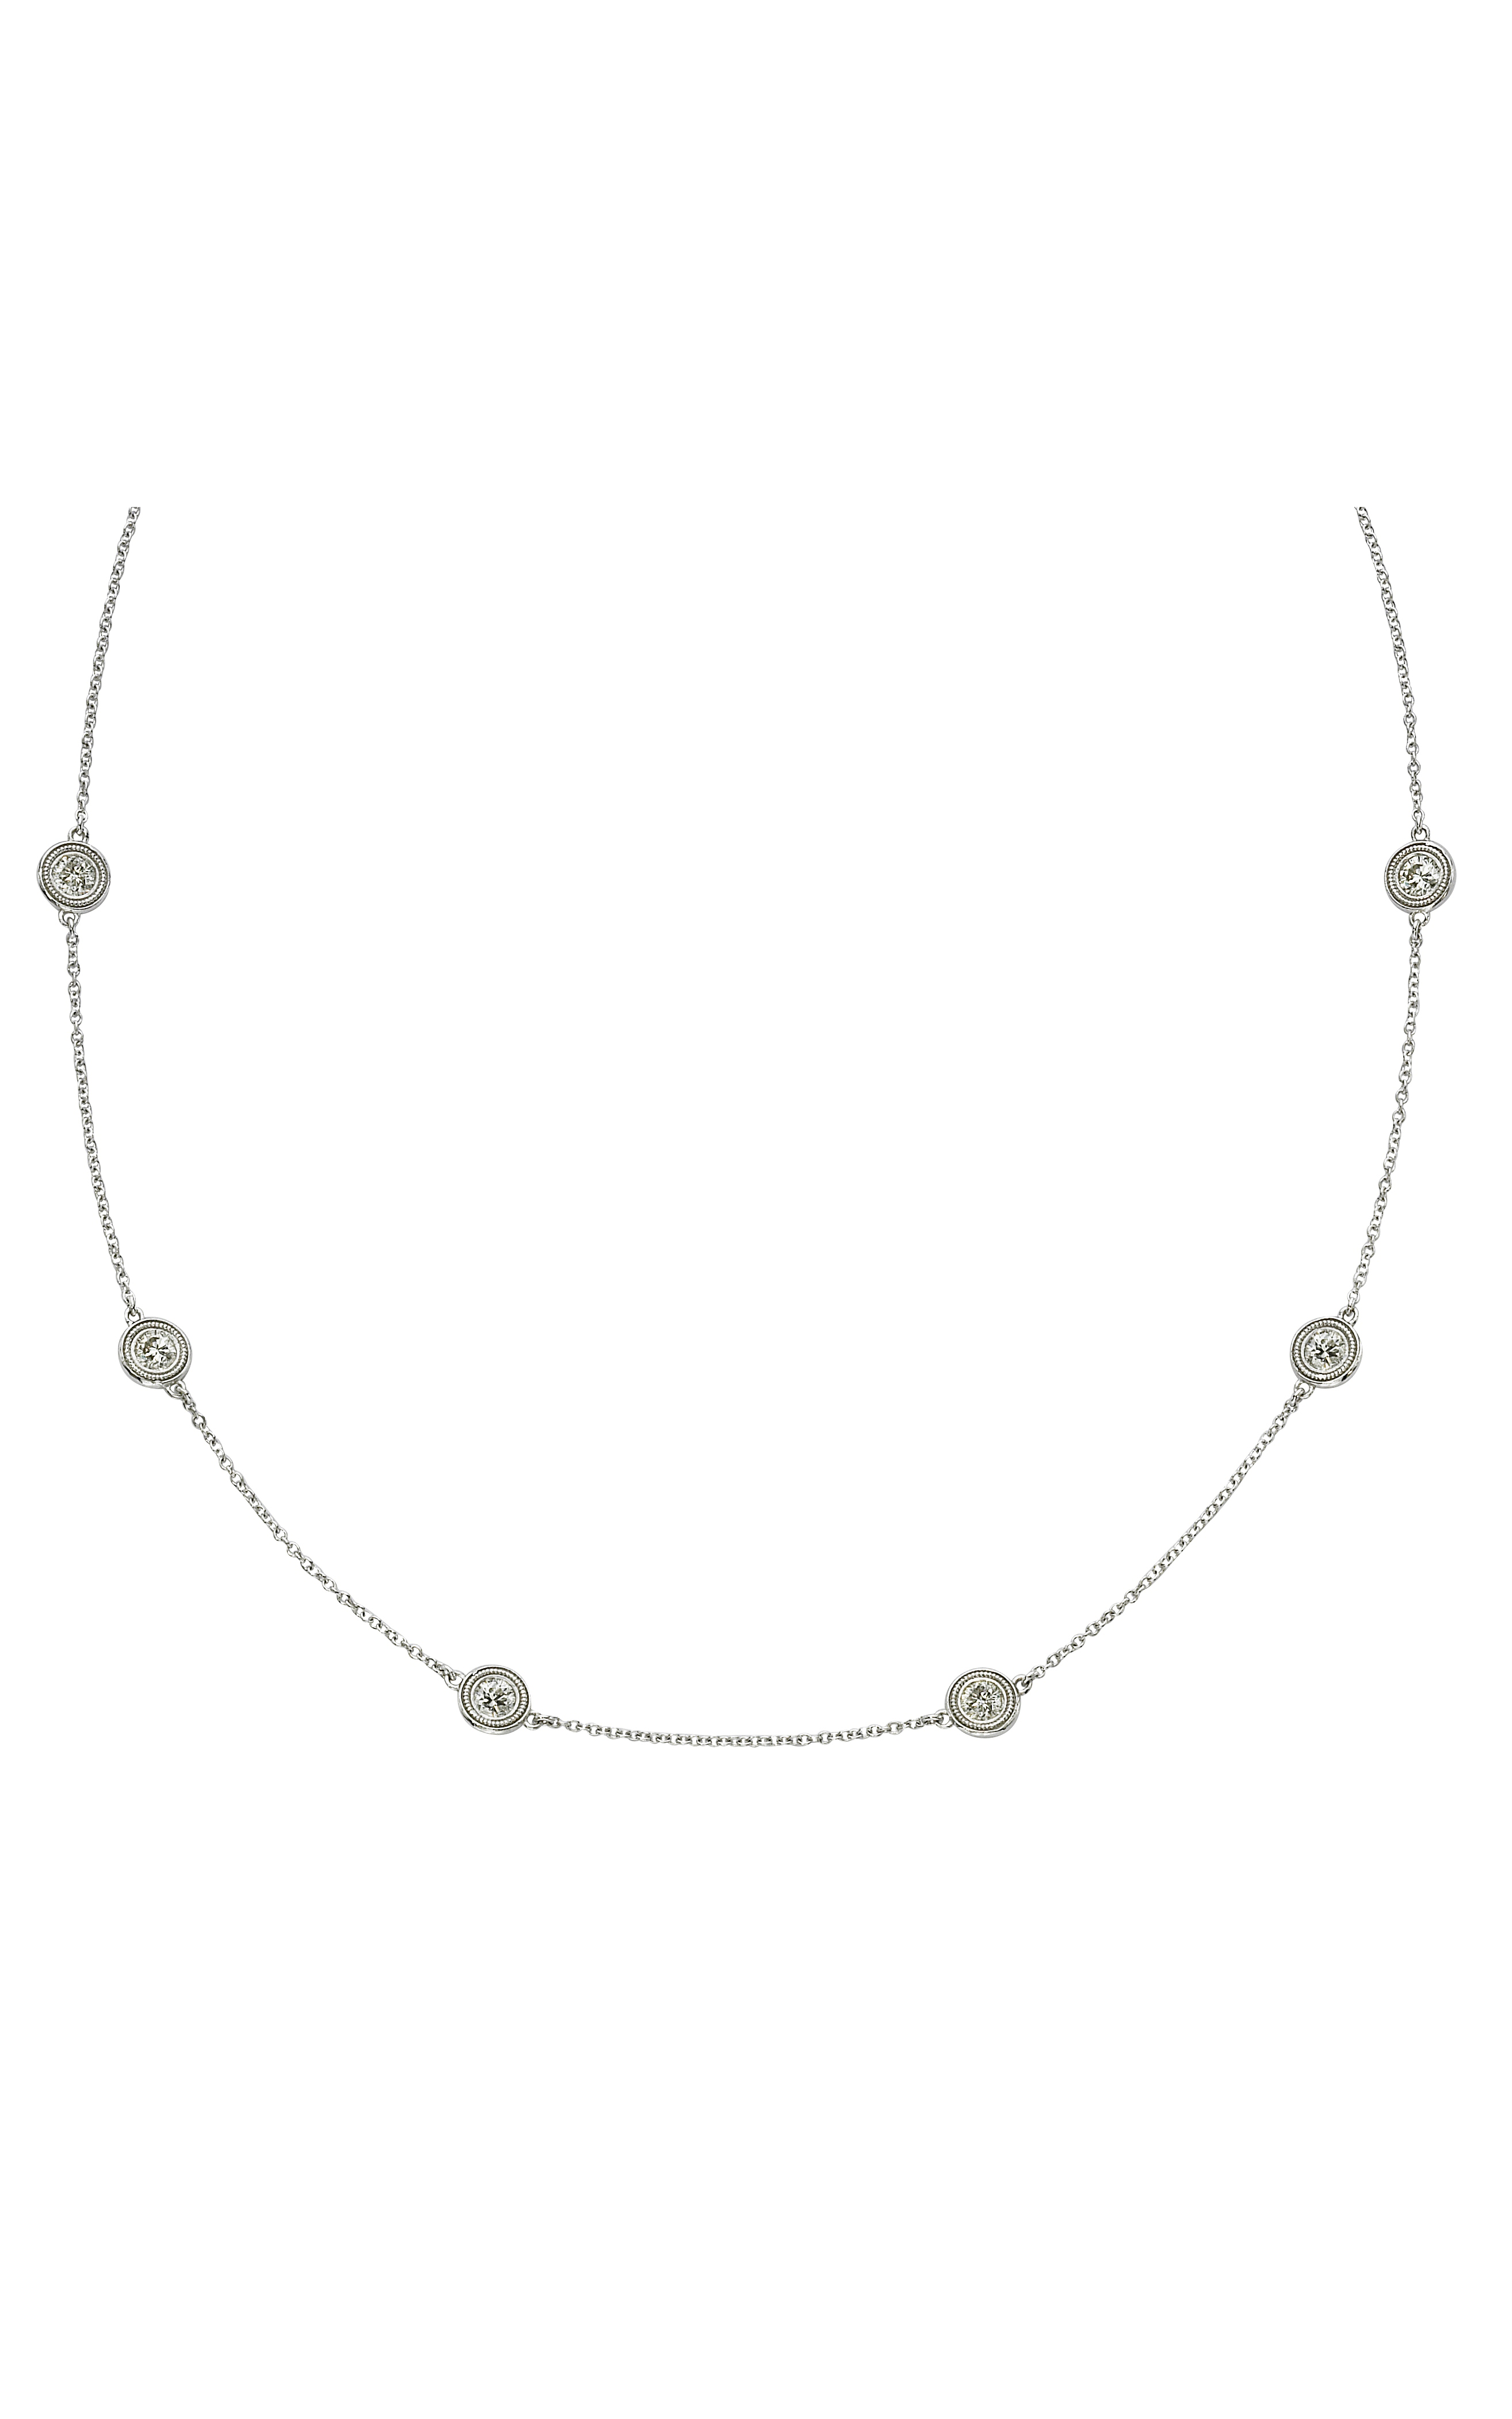 Beny Sofer Necklaces SN11-62 product image